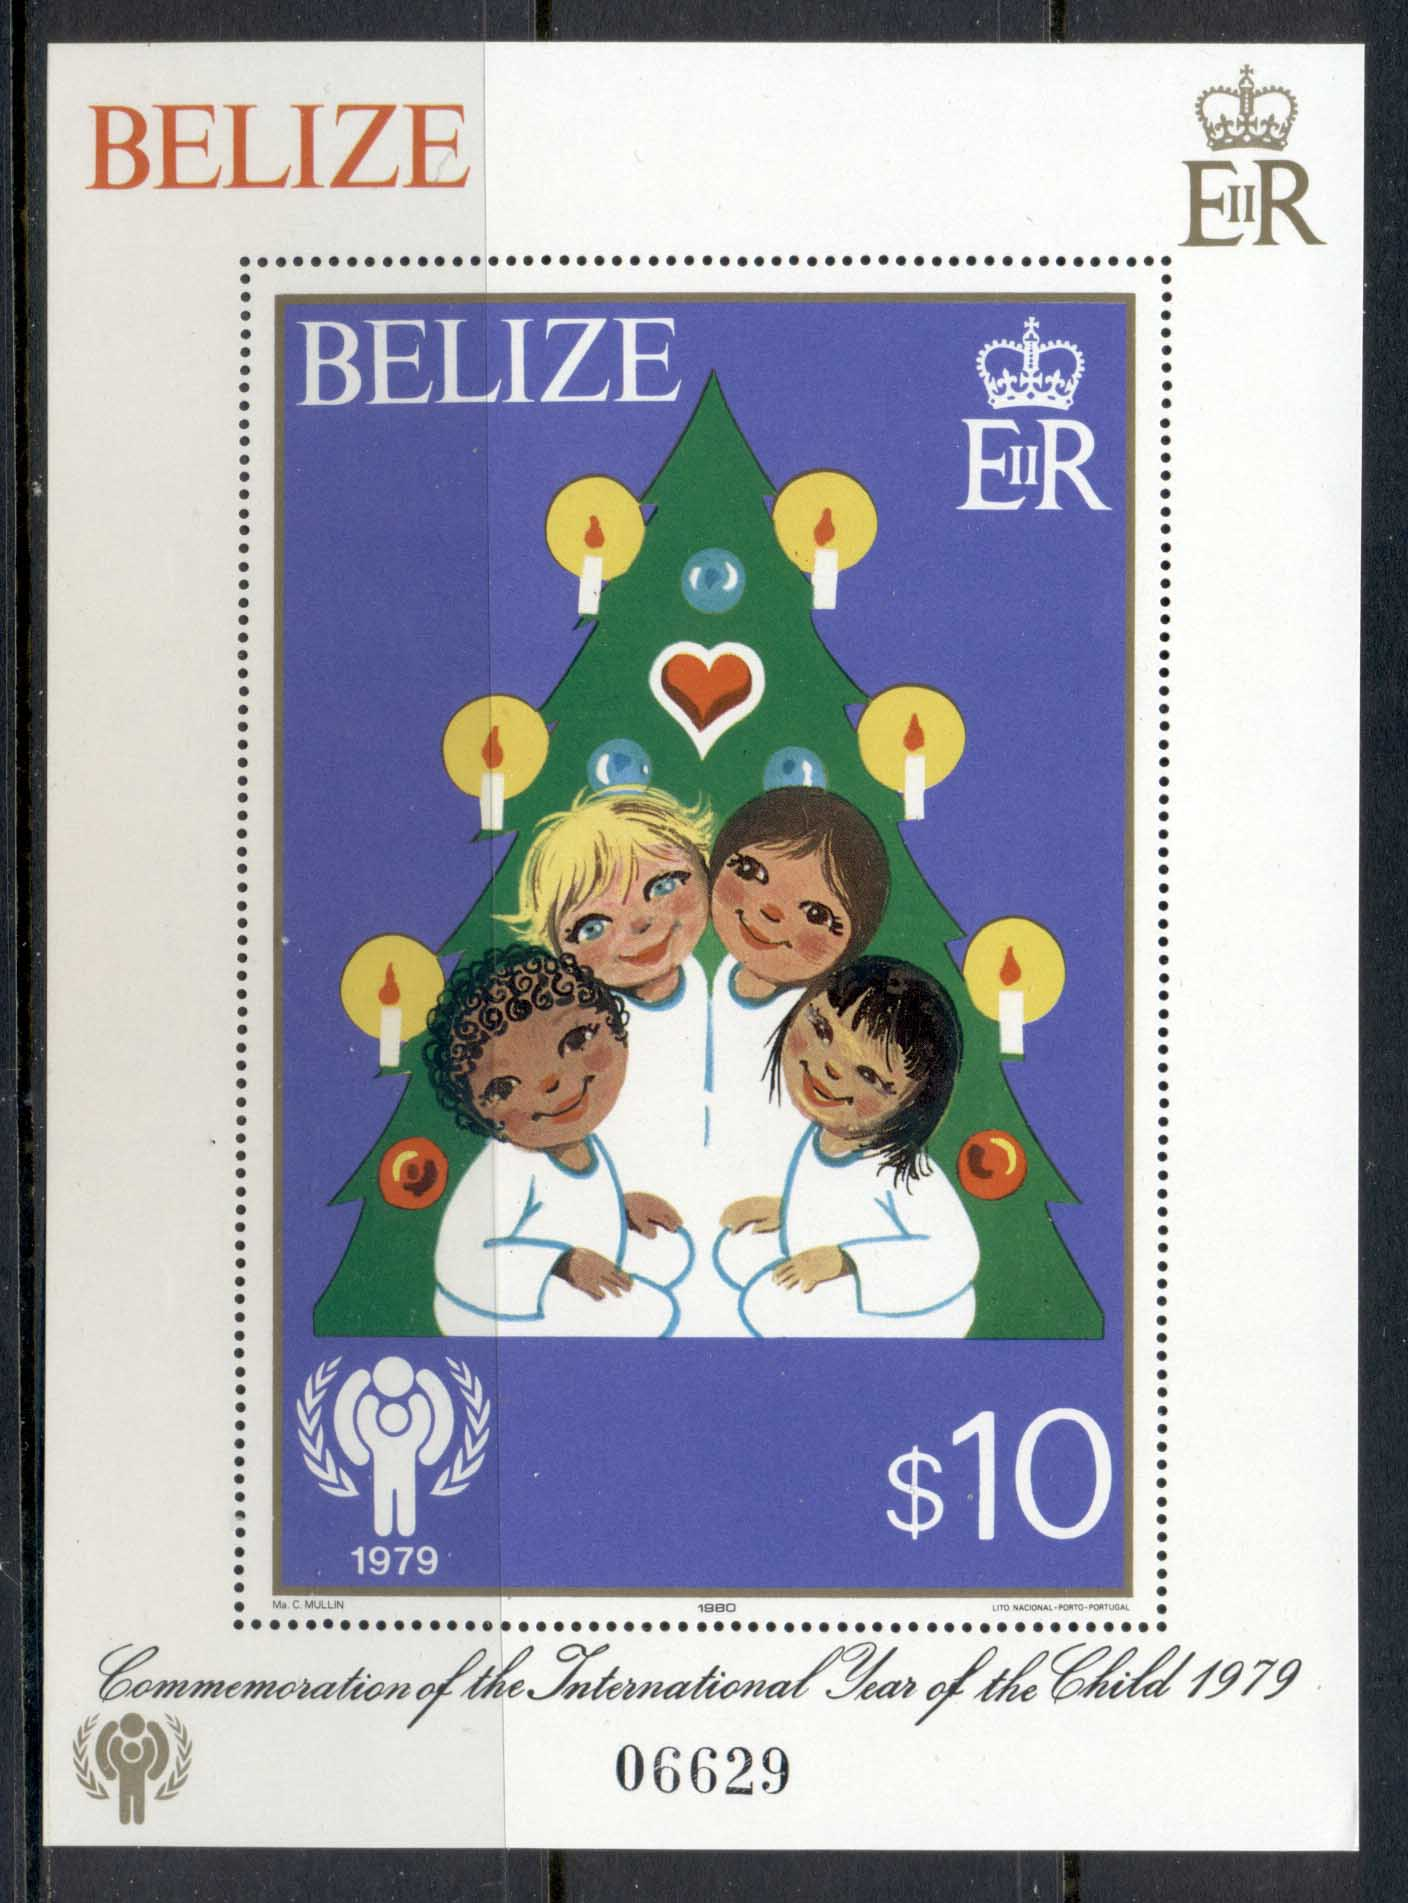 Belize 1979 IYC International year of the Child MS MUH